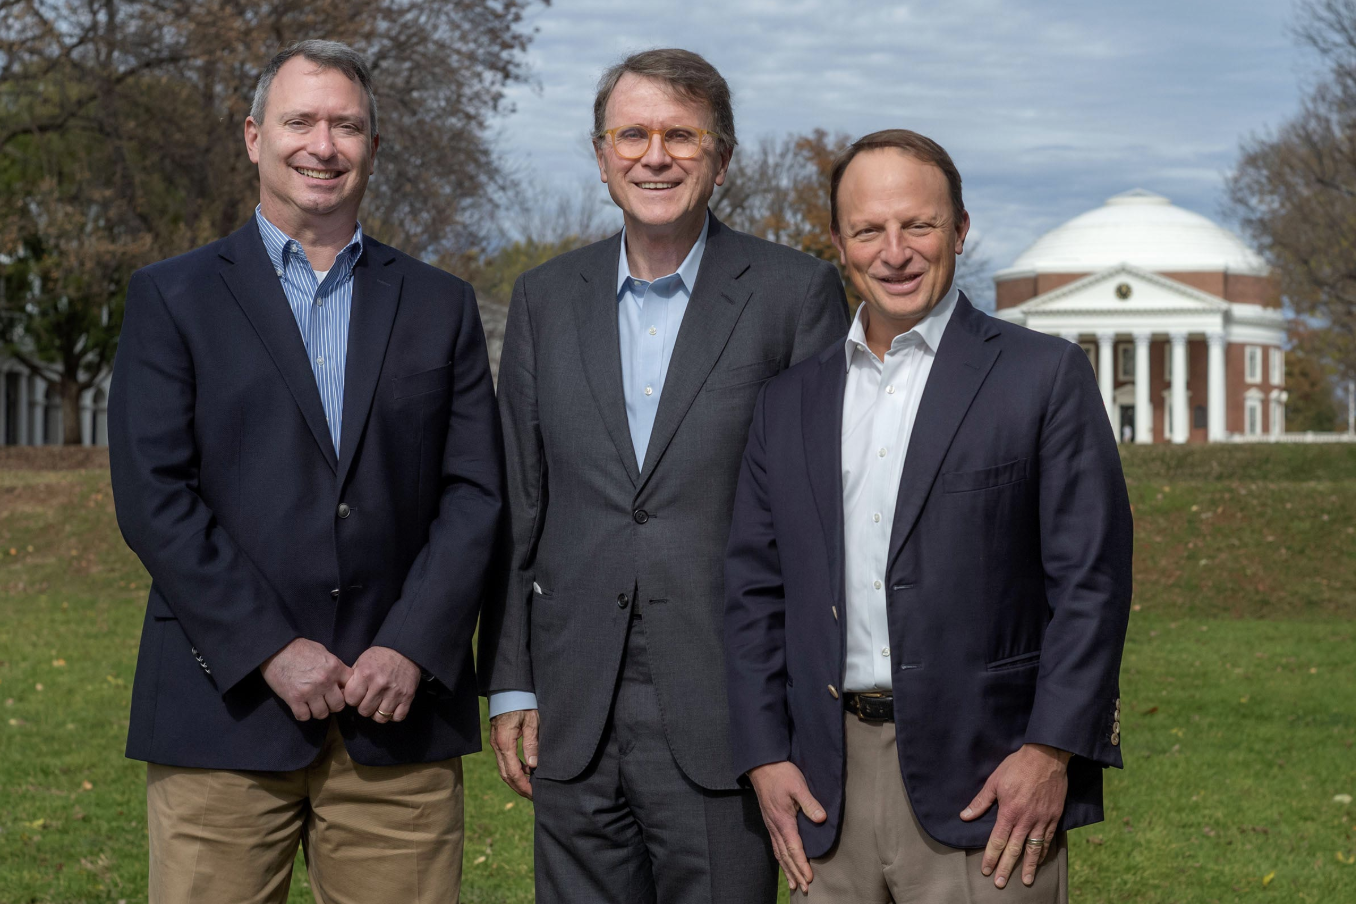 From left to right, politics professor David Leblang, Darden professor Robert Bruner and McIntire professor David Smith taught a class on the 2008 financial crisis in 2018, when this photo was taken. (Photo by Sanjay Suchak, University Communications)